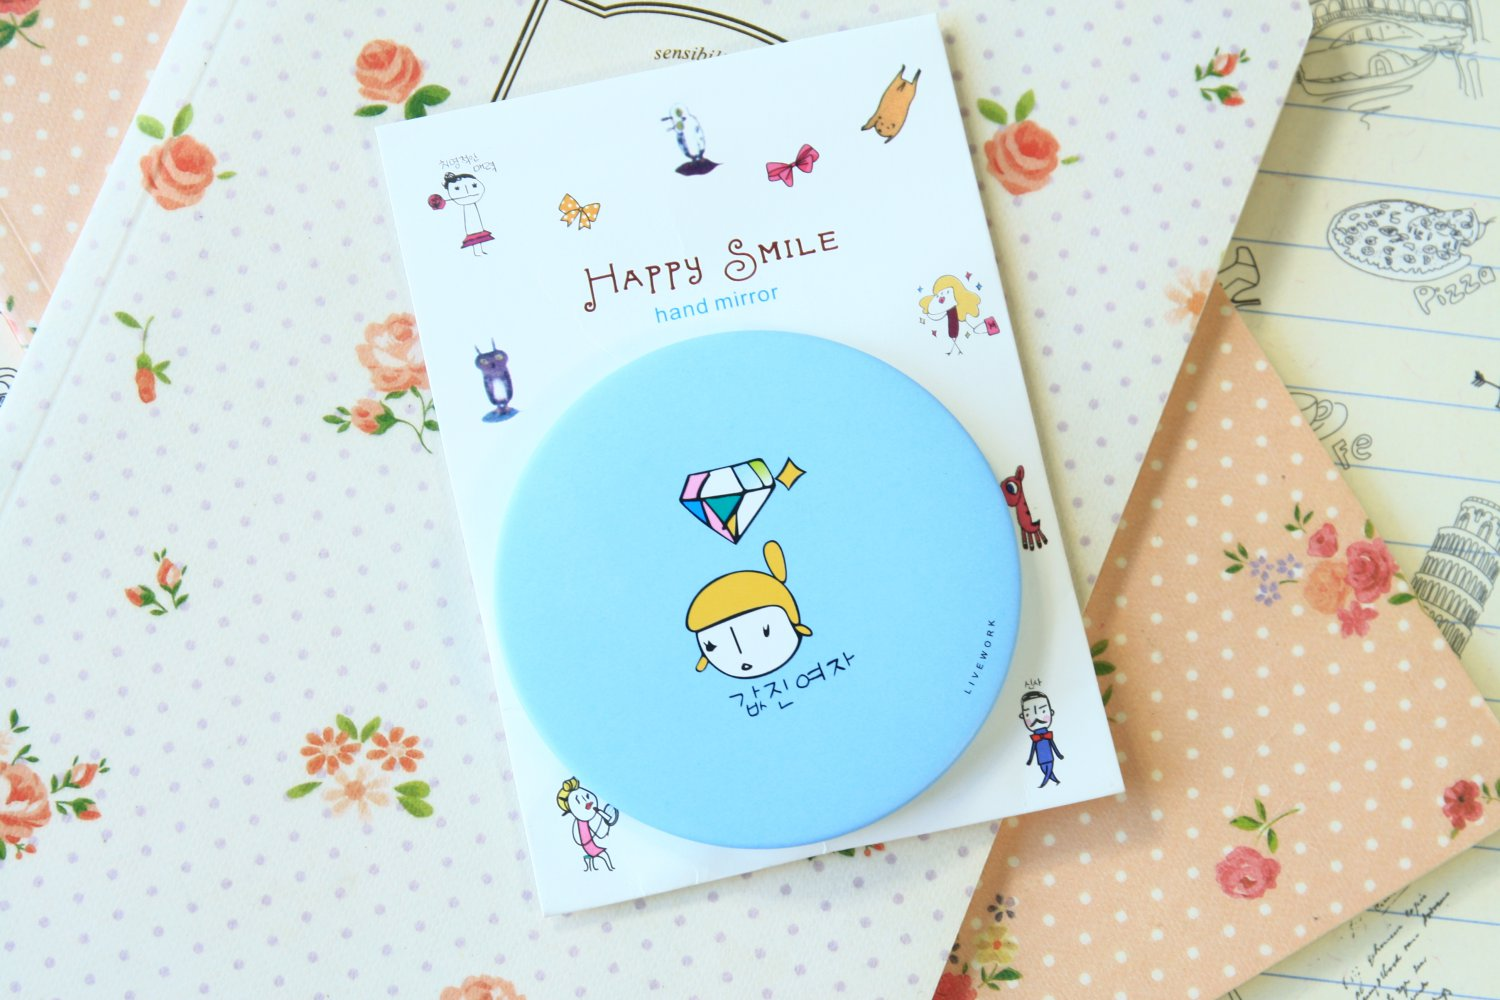 Blue Girl Happy Smile pocket mirror